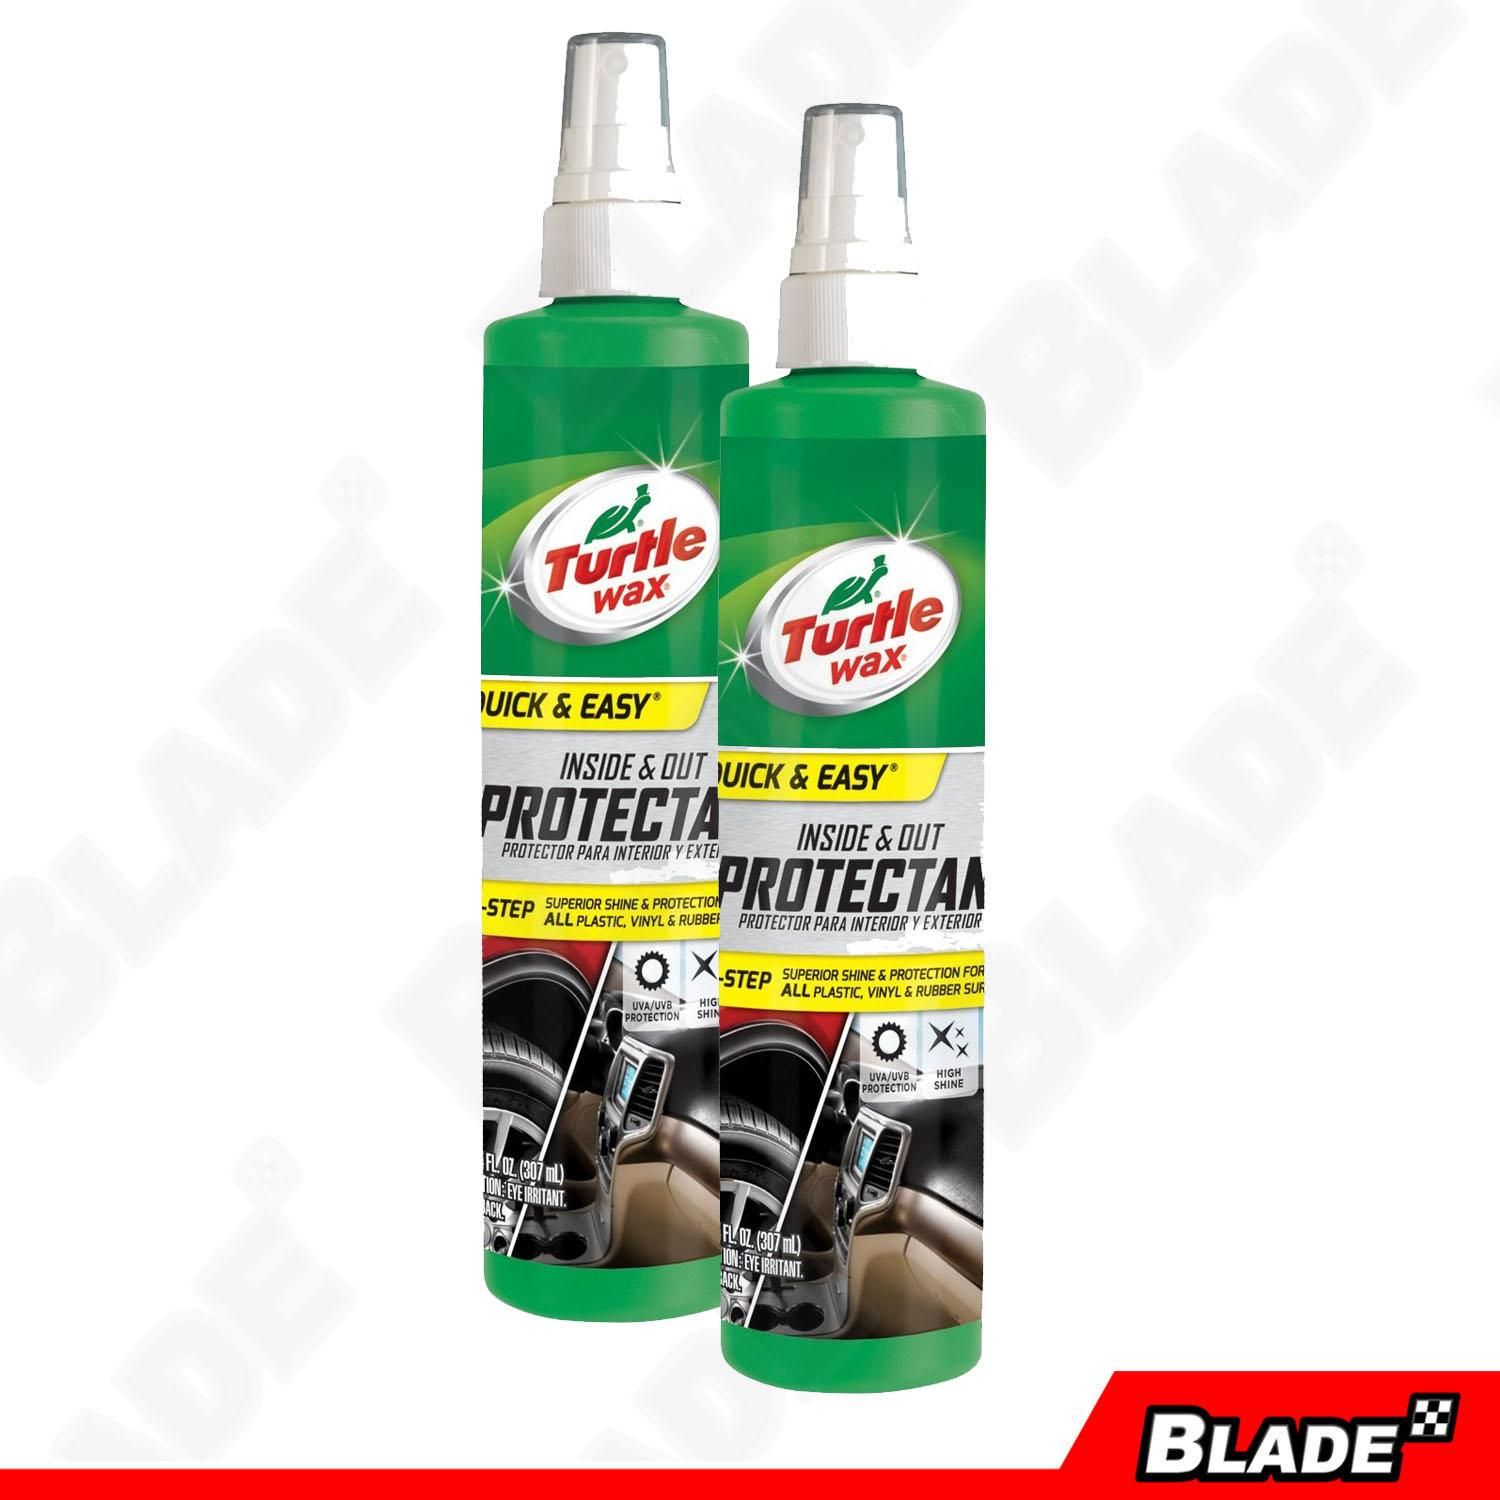 How To Buy Turtle Wax T 238 Scratch And Swirl Remover 325ml Set Of 2 Turtlewax 319 Jet Back Spray Detailer 96r Super Protectant 307ml Bundle